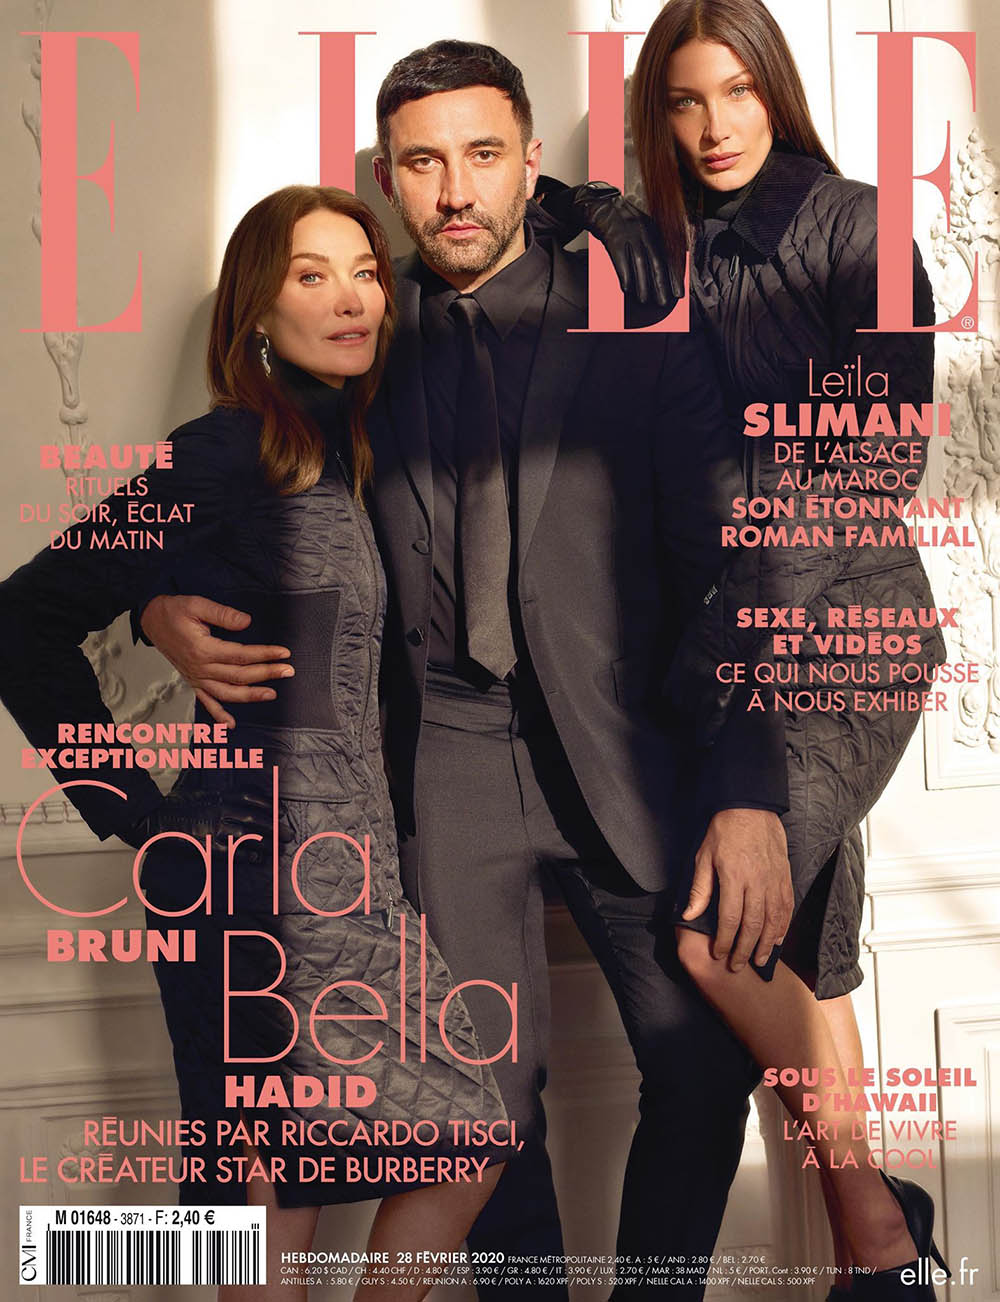 Riccardo Tisci, Carla Bruni and Bella Hadid cover Elle France February 28th, 2020 by Mark Seliger